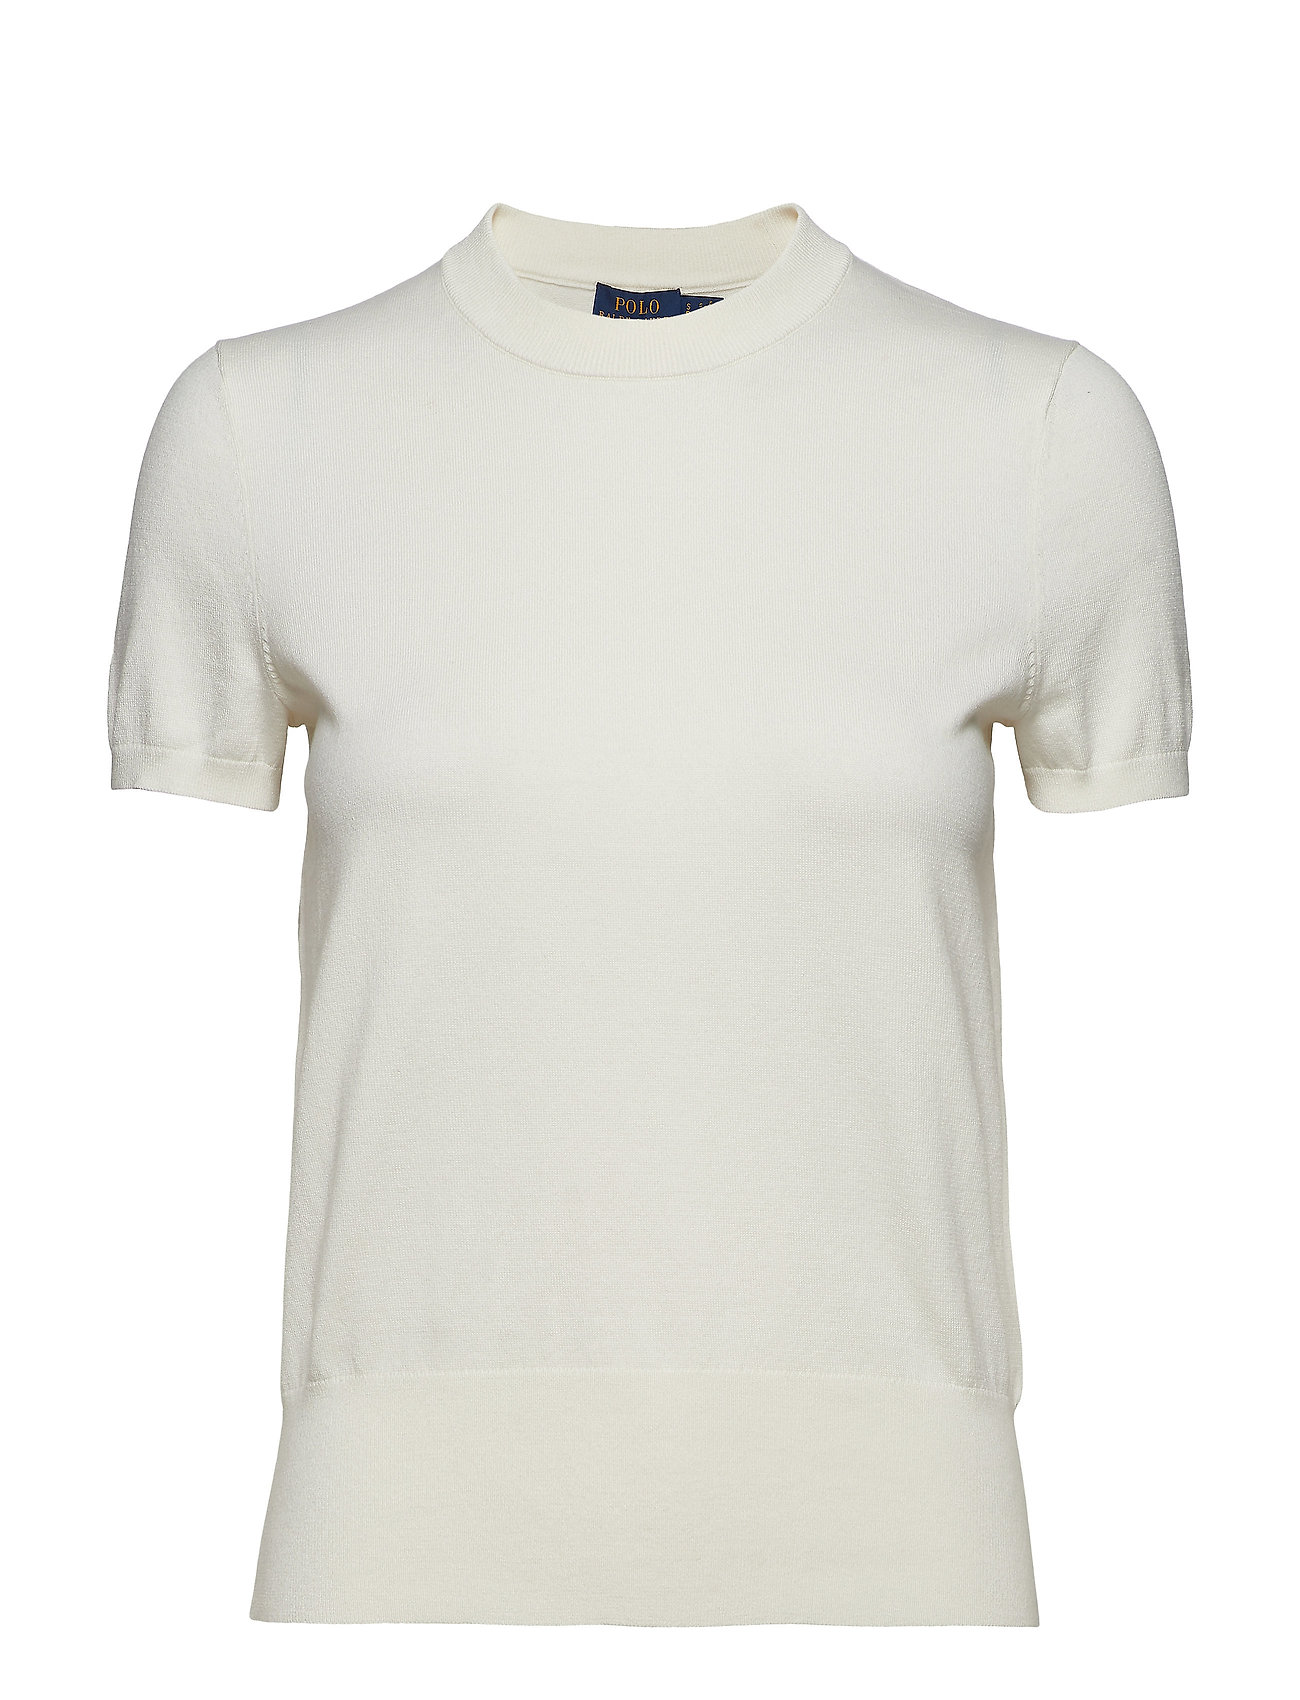 Polo Ralph Lauren Cotton Short-Sleeve Sweater - COLLECTION CREAM